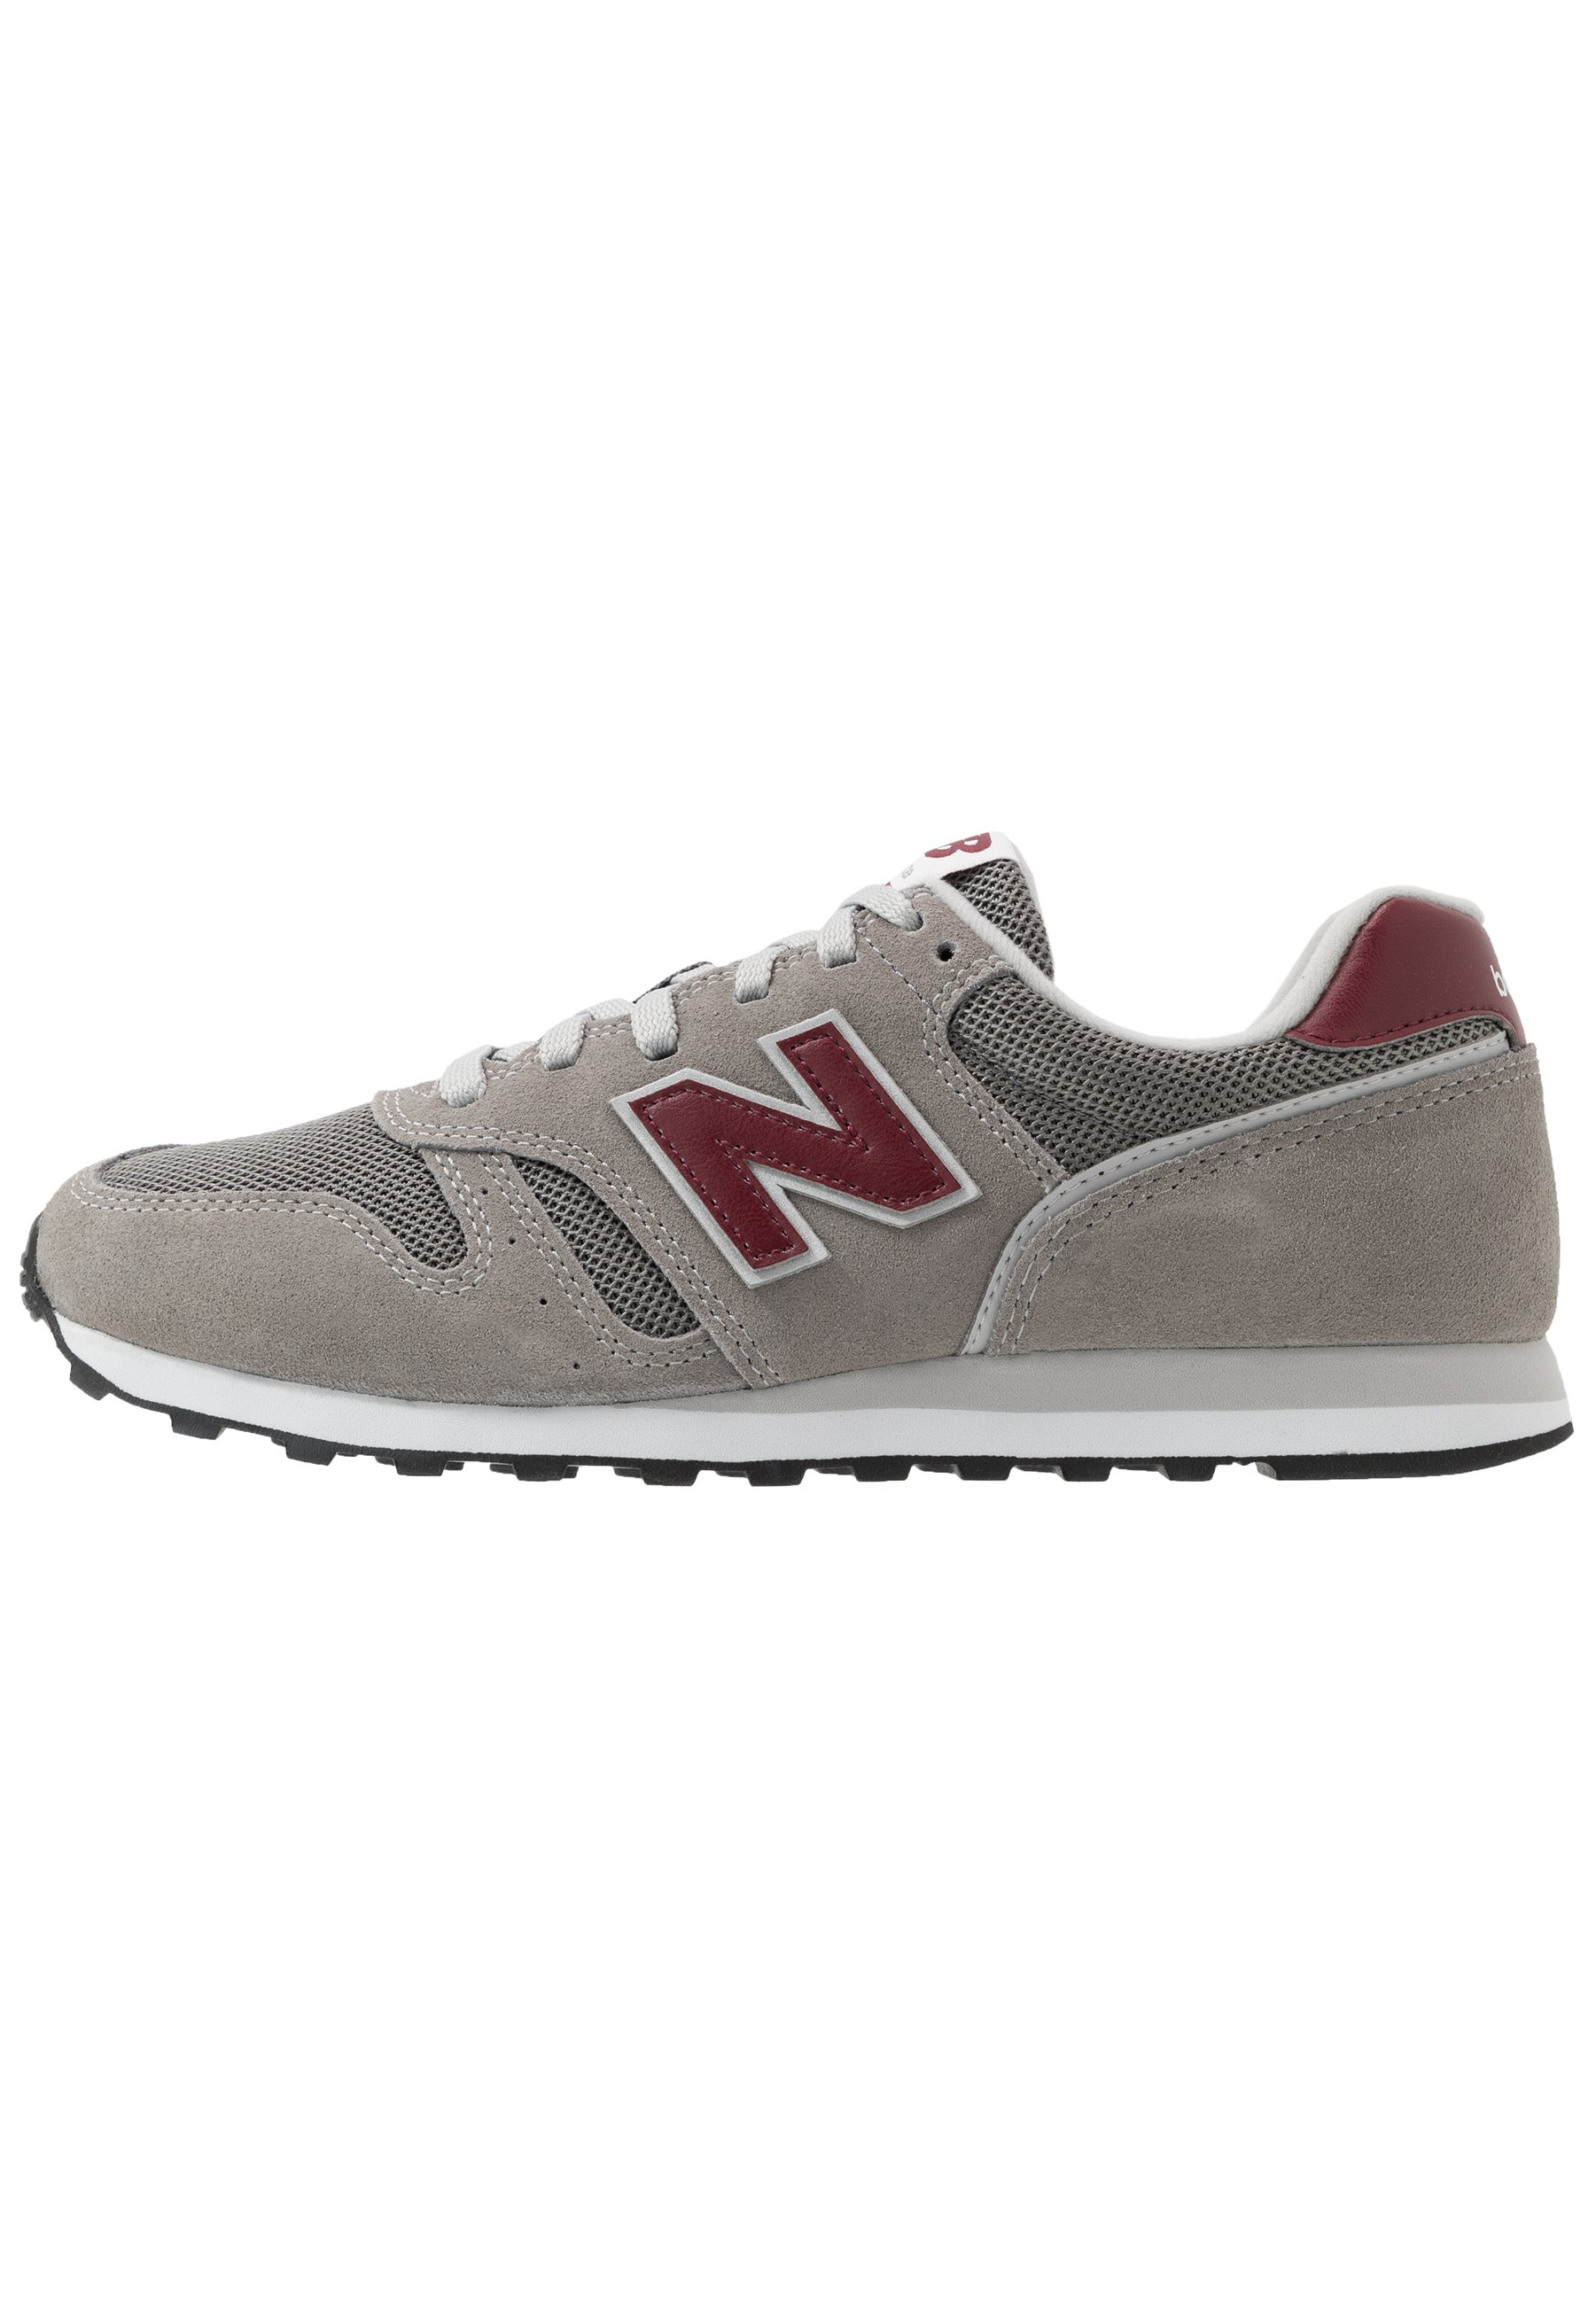 373 - Baskets basses - grey/red